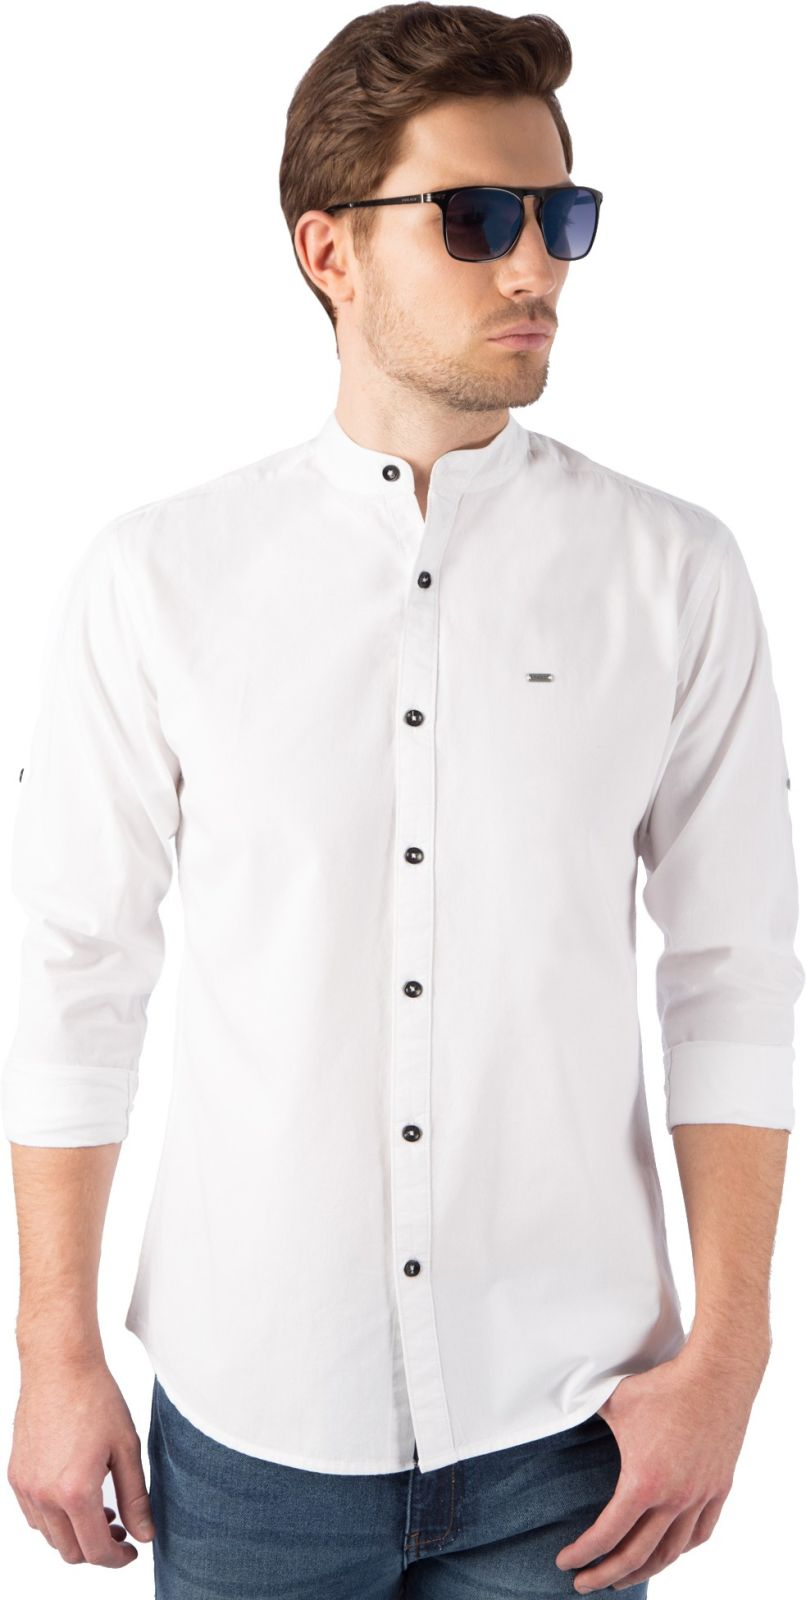 Rodid Mens Solid Casual Mandarin Shirt